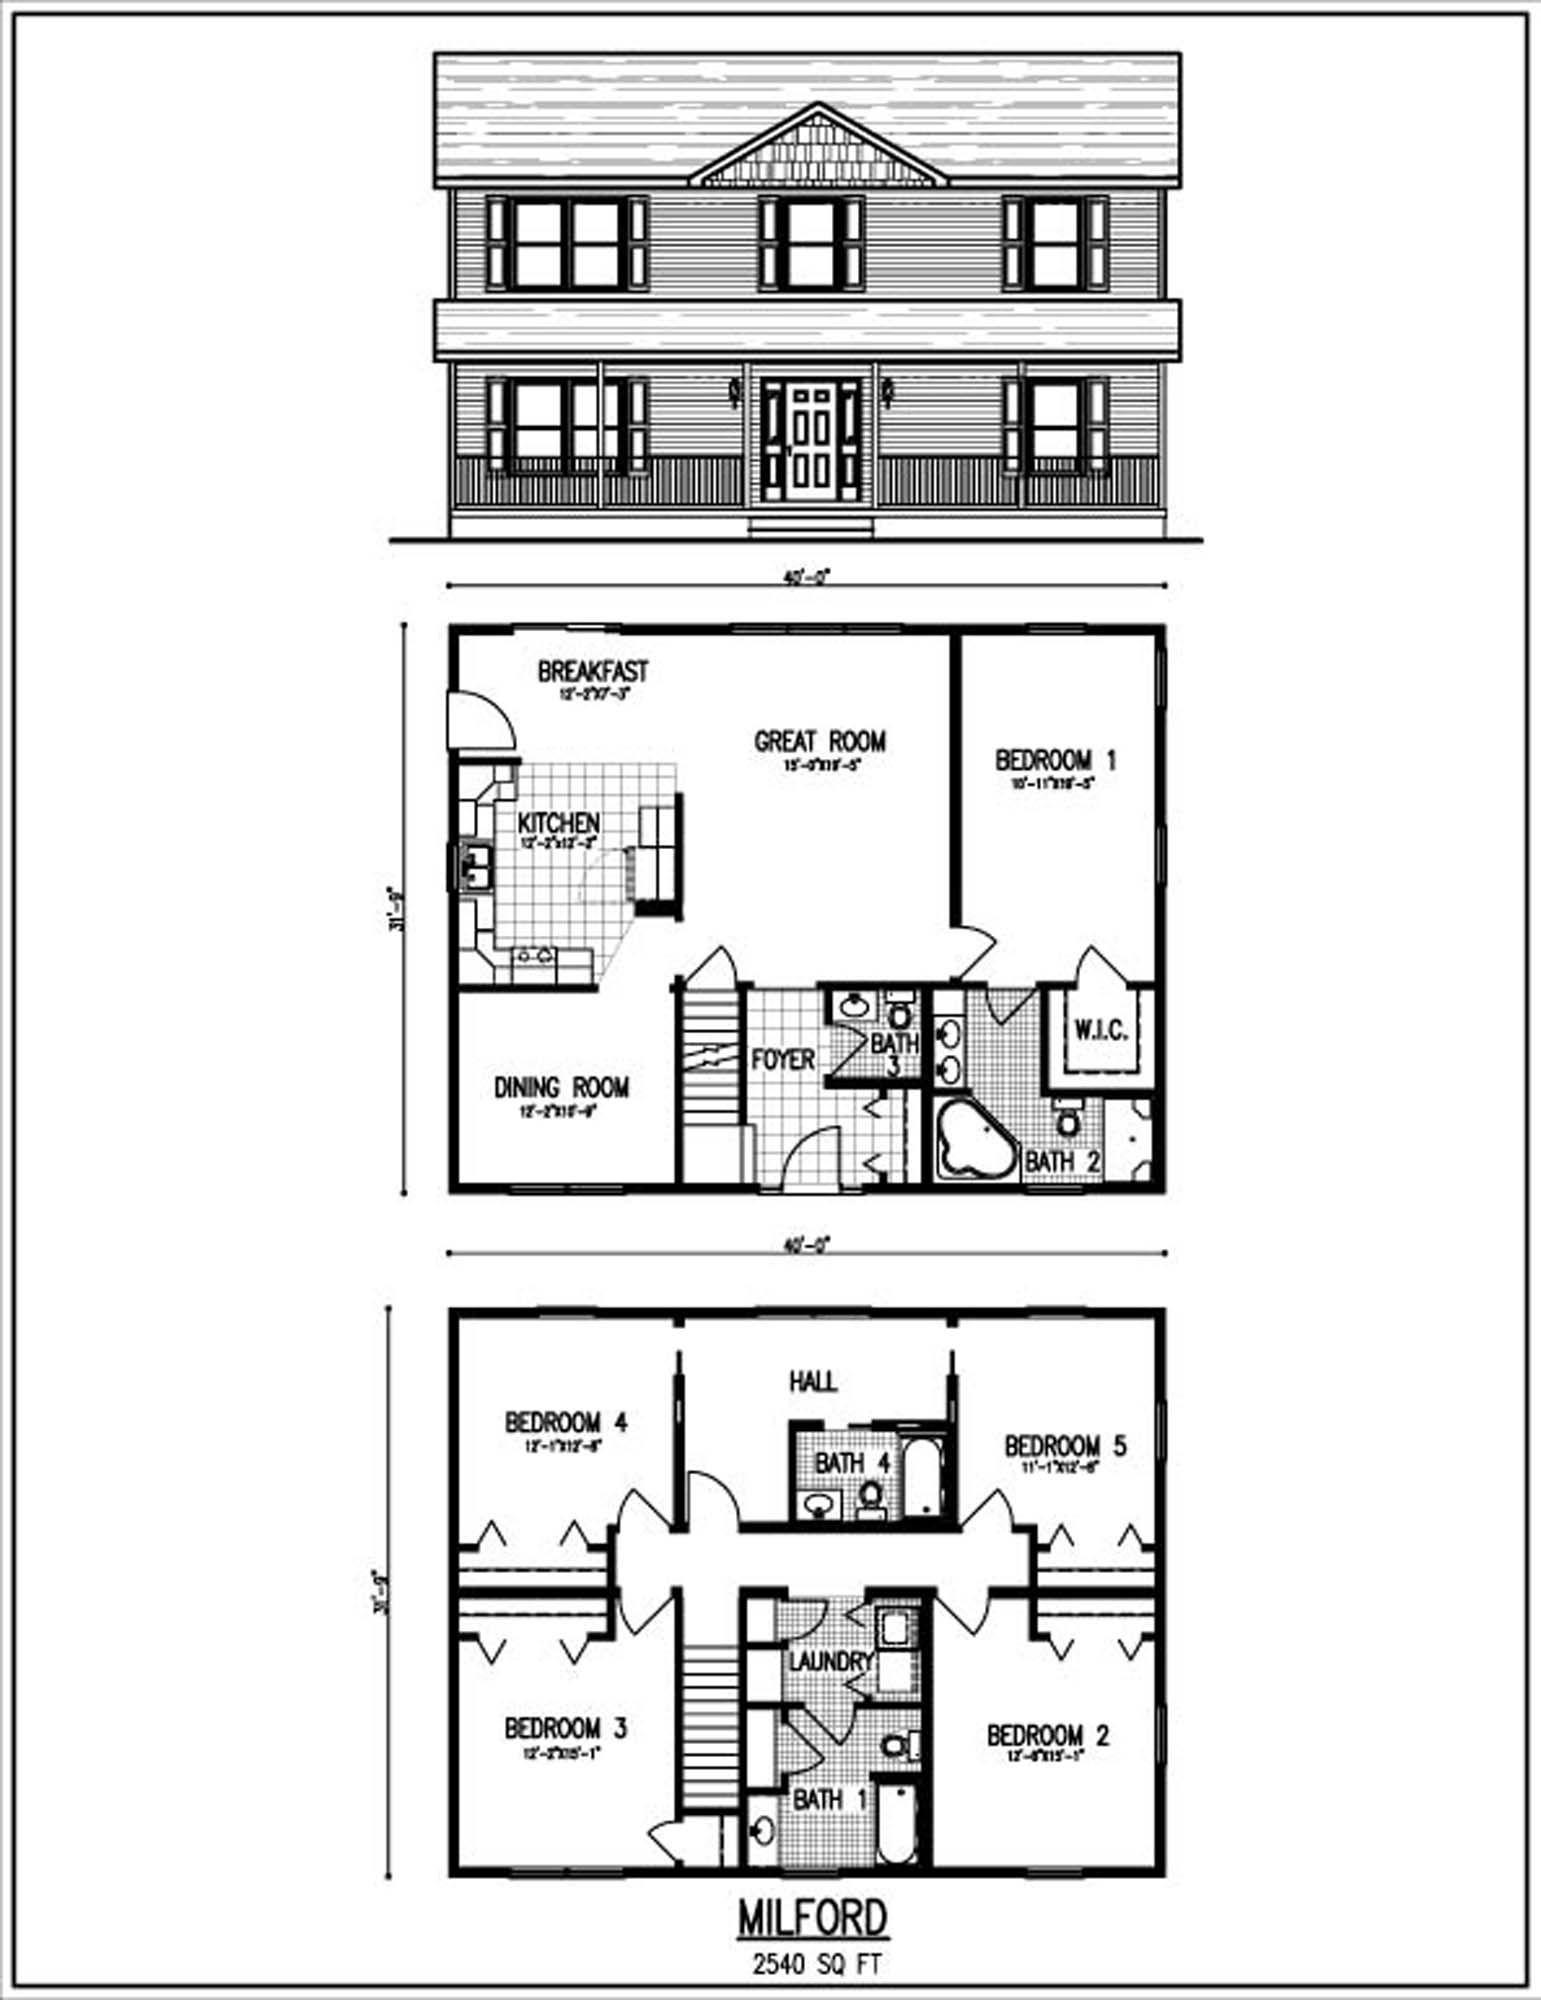 two story house blueprints beautiful 2 story house plans with level floor plan 22462